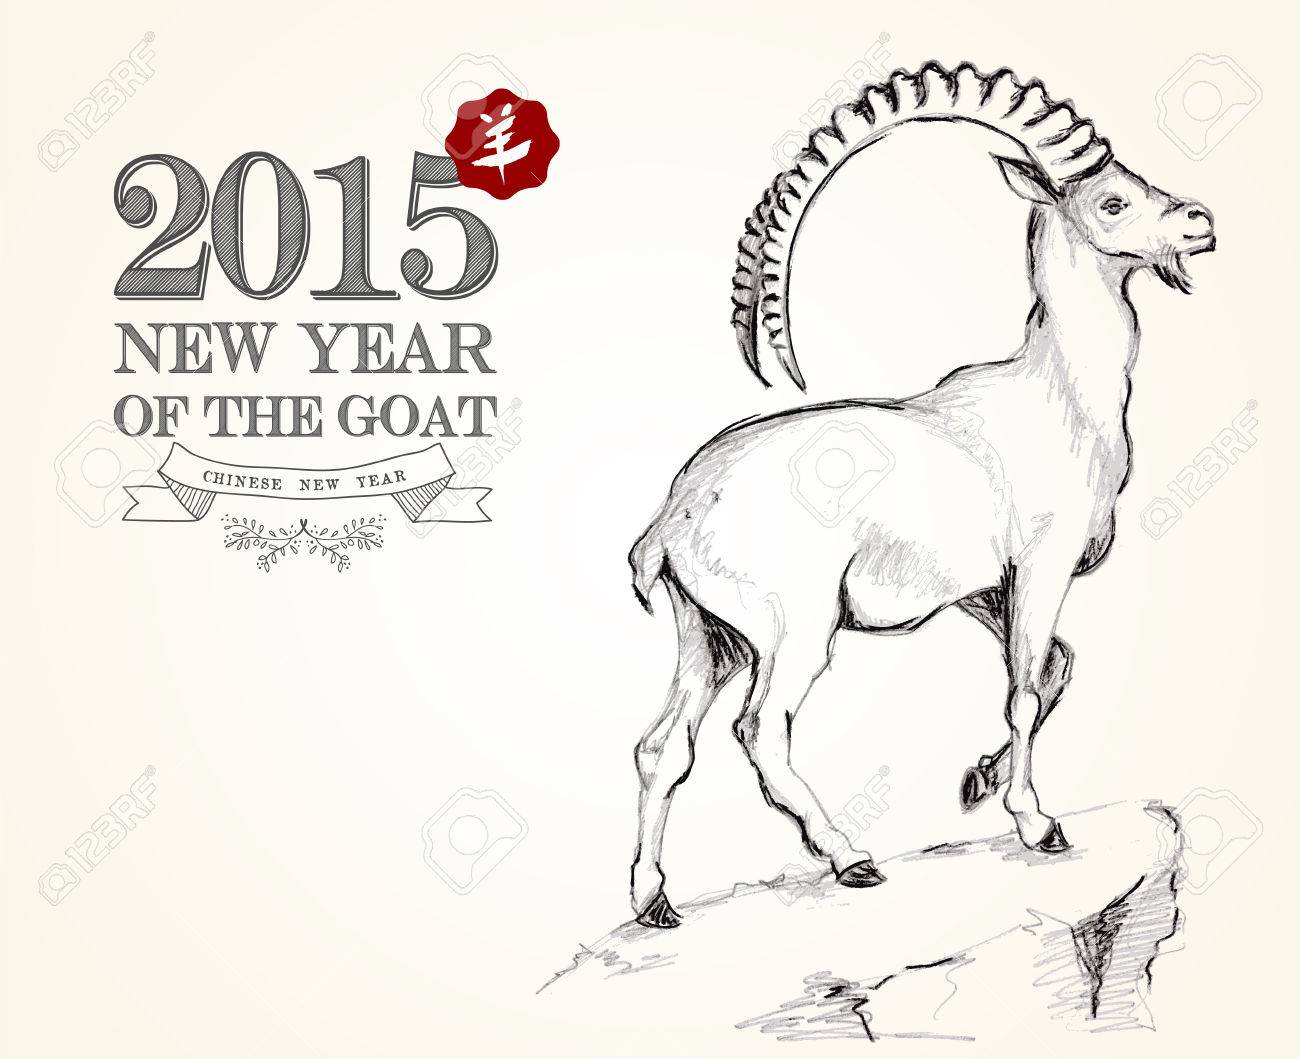 vintage new year of the goat 2015 retro style and hand drawn animal composition stock - Chinese New Year 2015 Animal